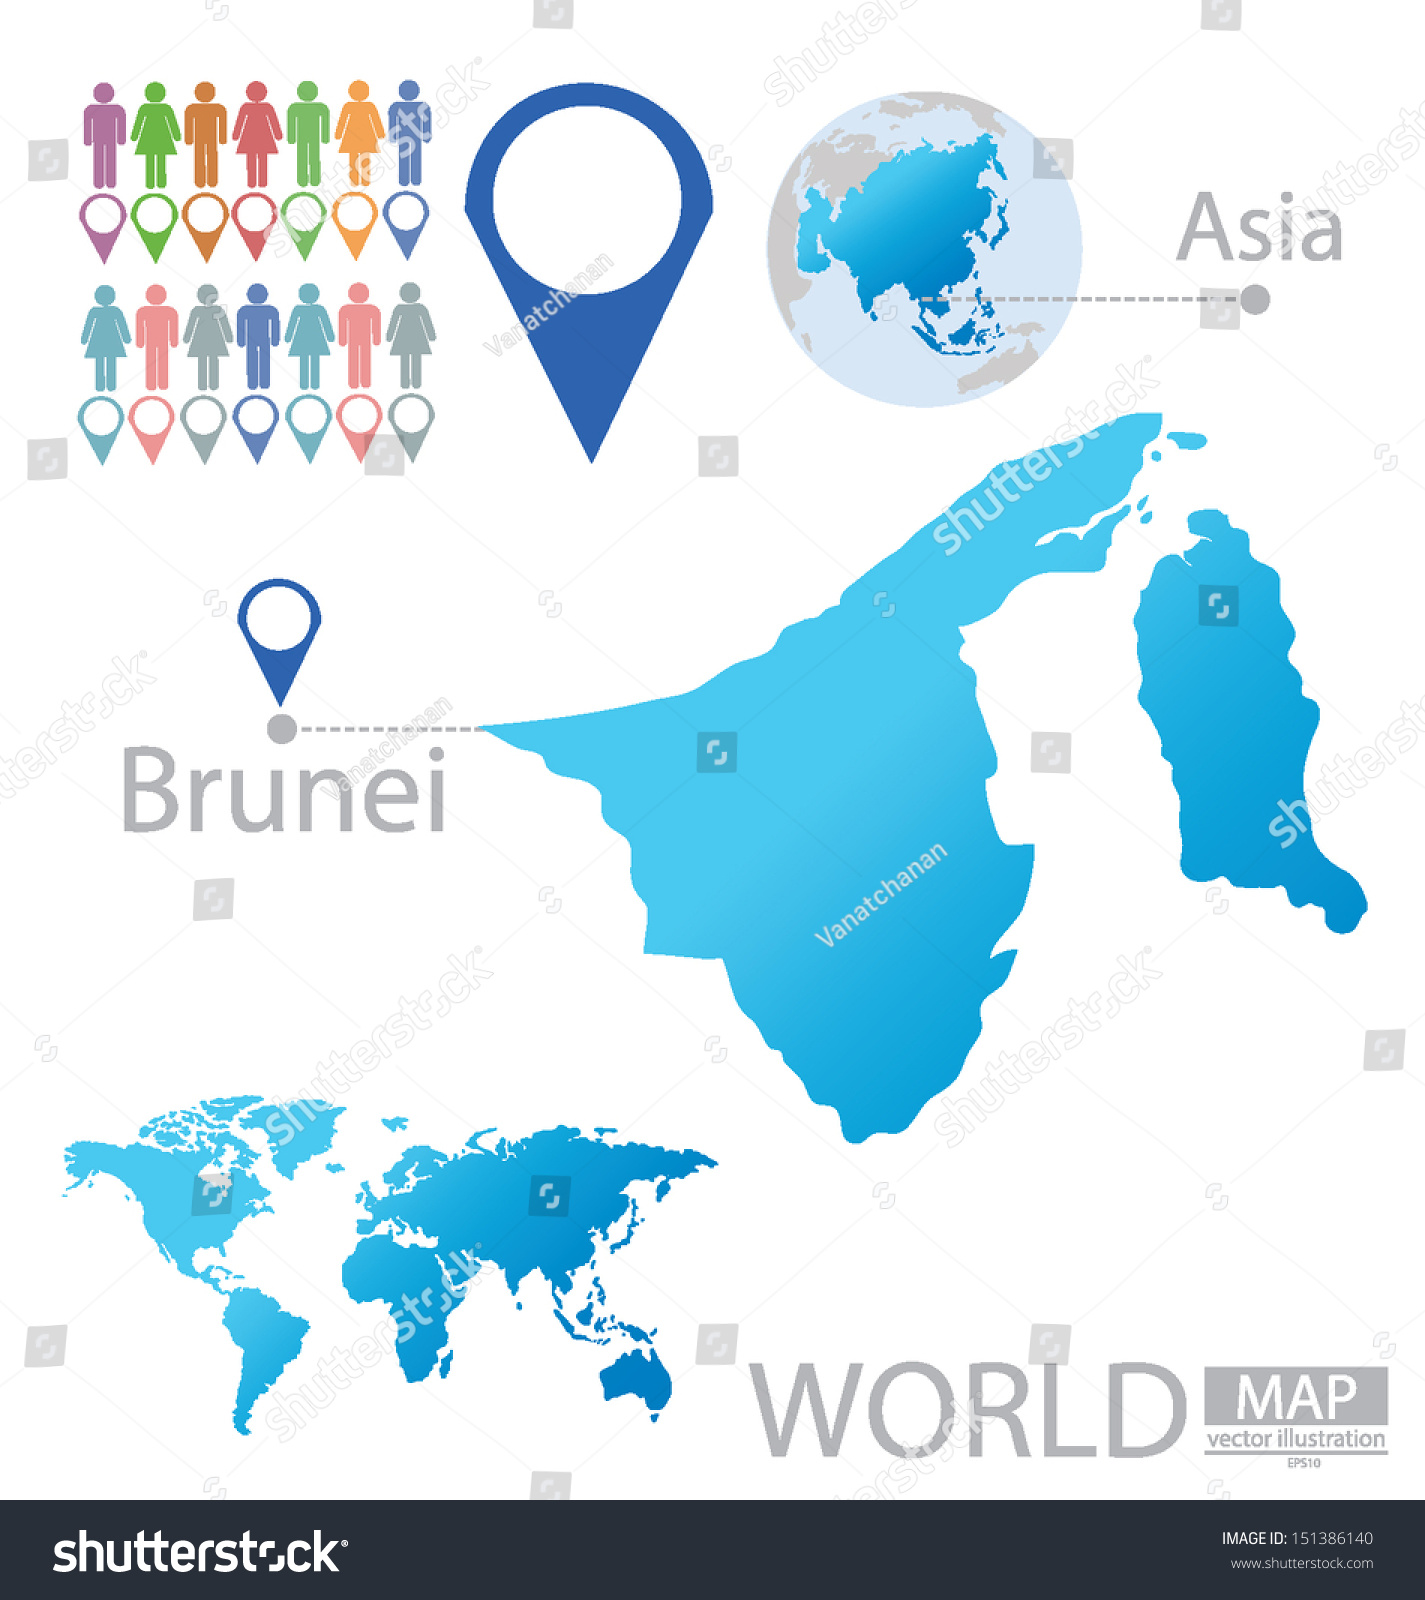 Brunei asia world map vector illustration stock vector 151386140 brunei asia world map vector illustration gumiabroncs Images